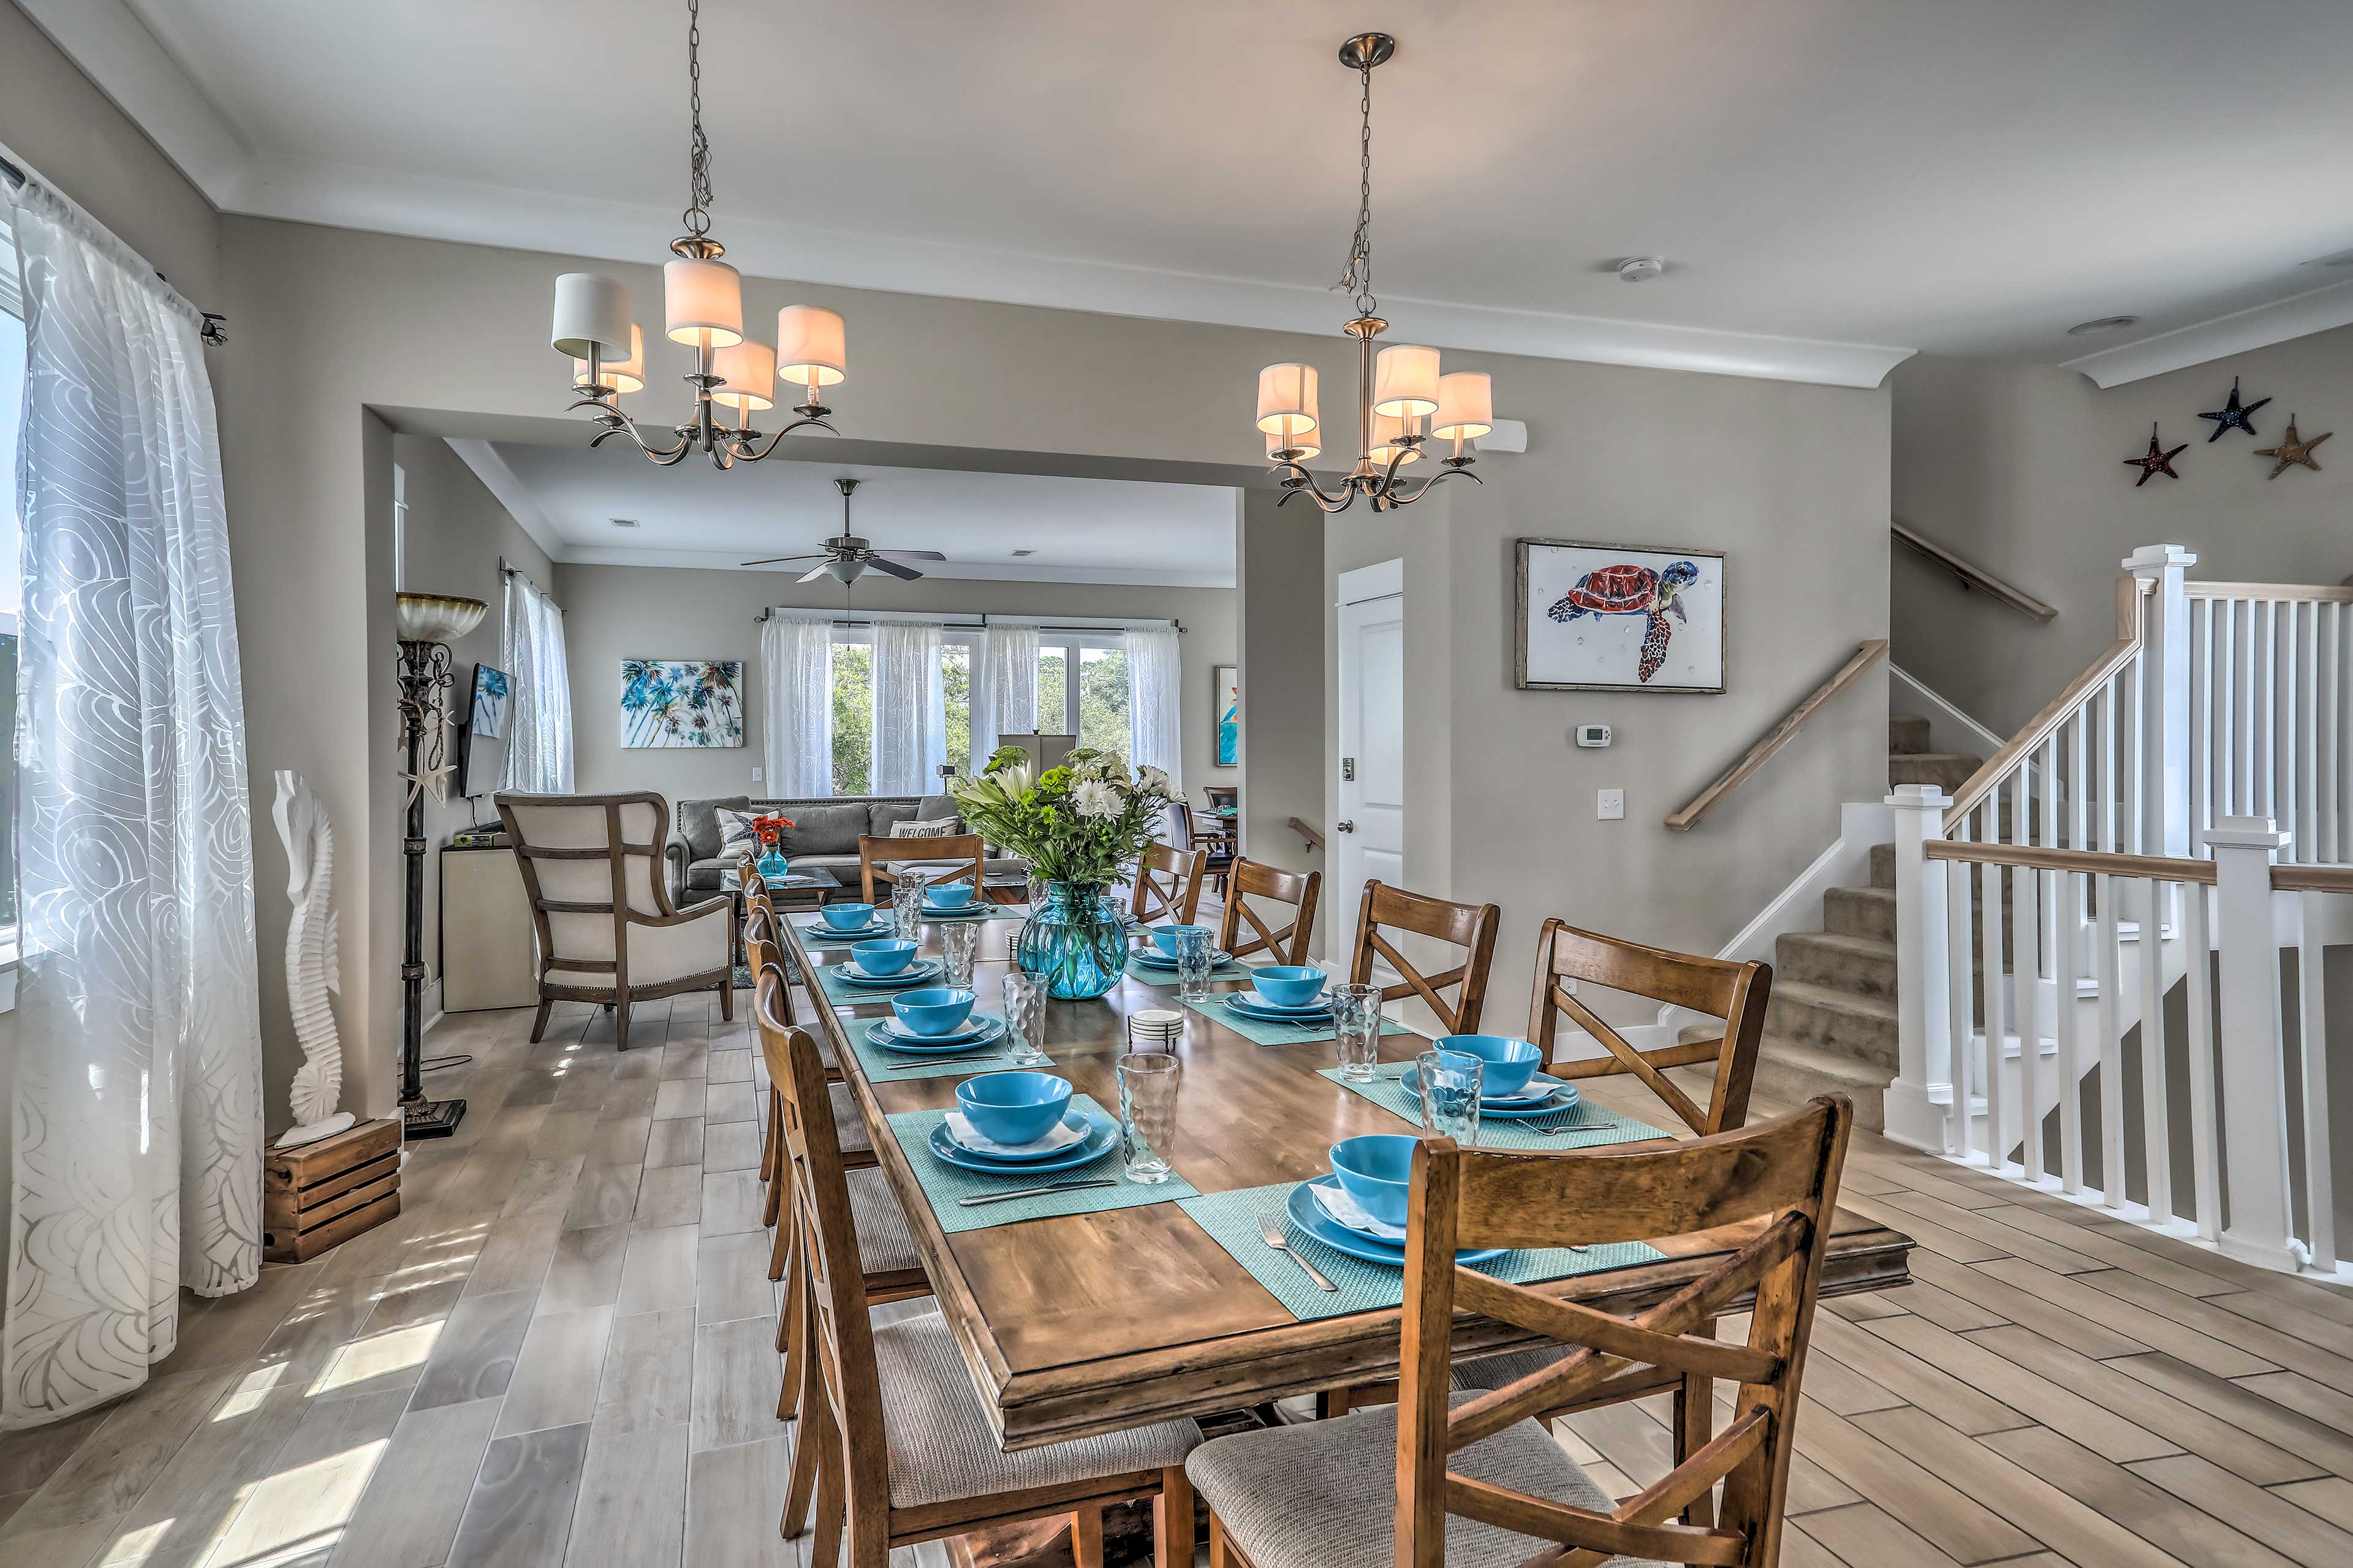 Enjoy tasty home-cooked meals gathered around the spacious dining room table.